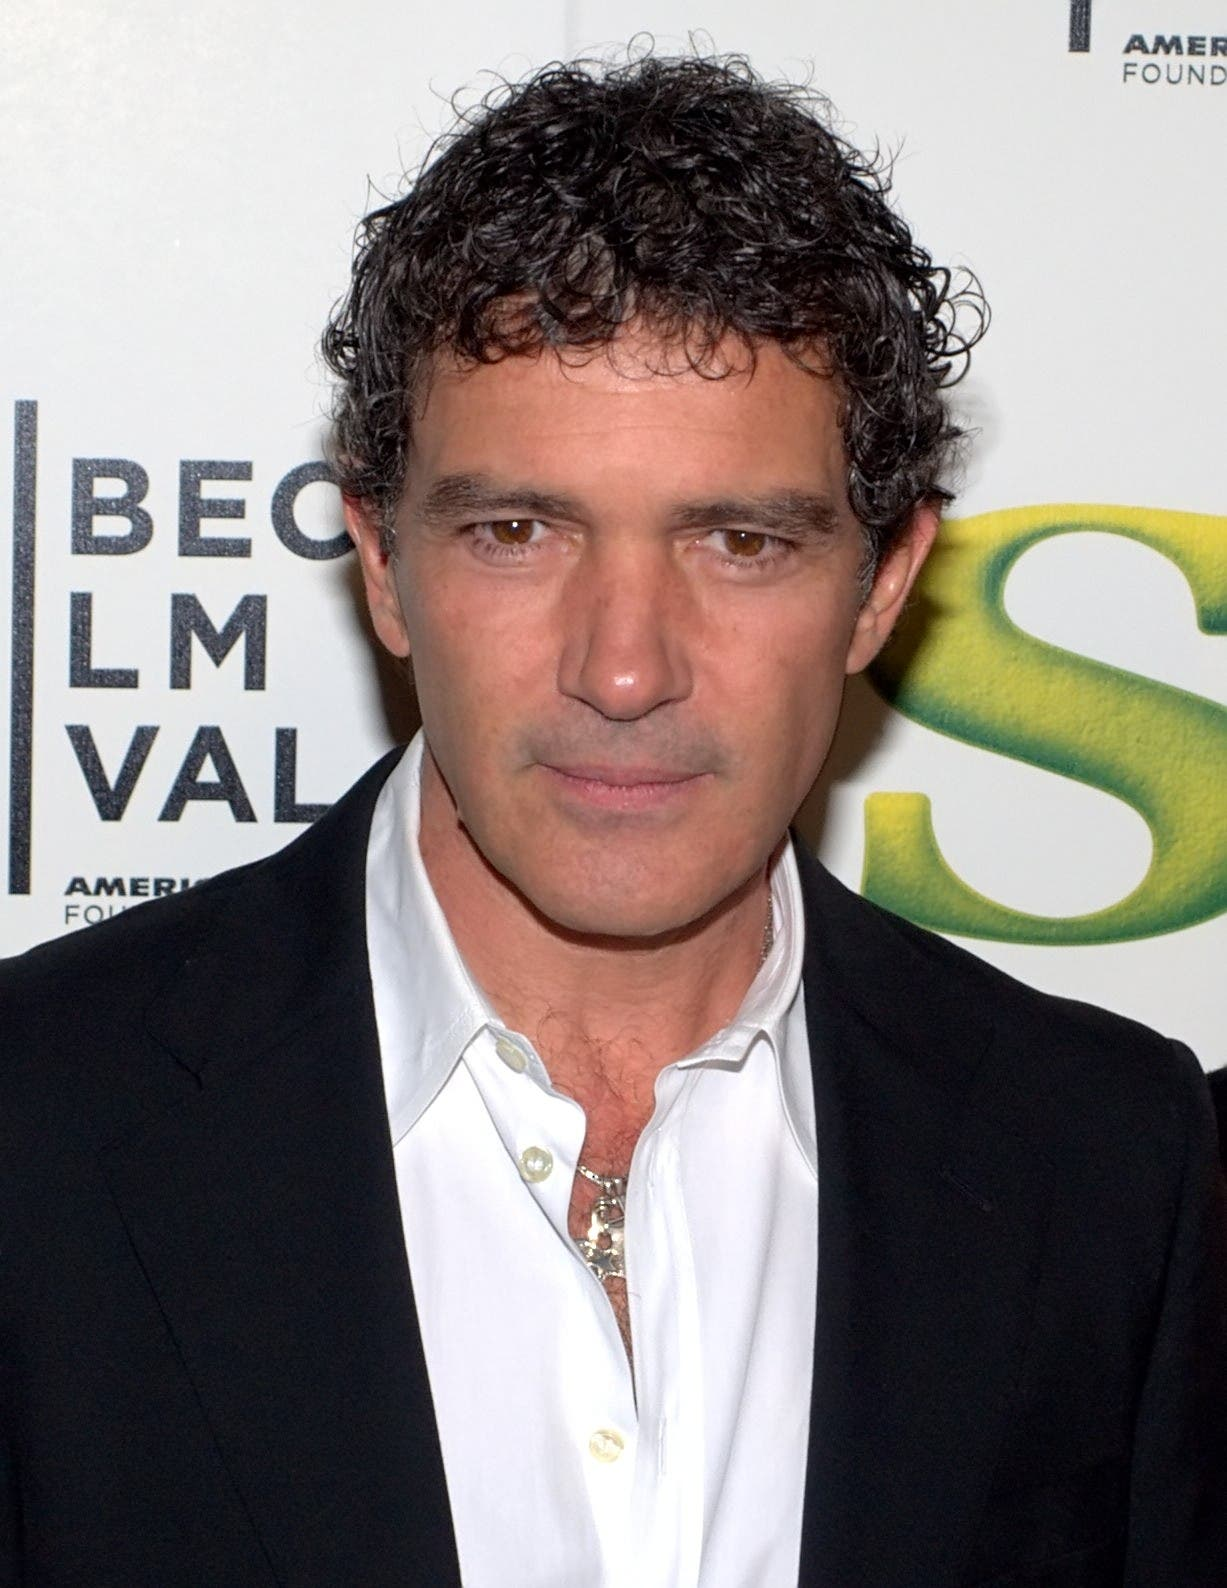 Antonio Banderas to receive honorary Goya Award for 'stellar career'